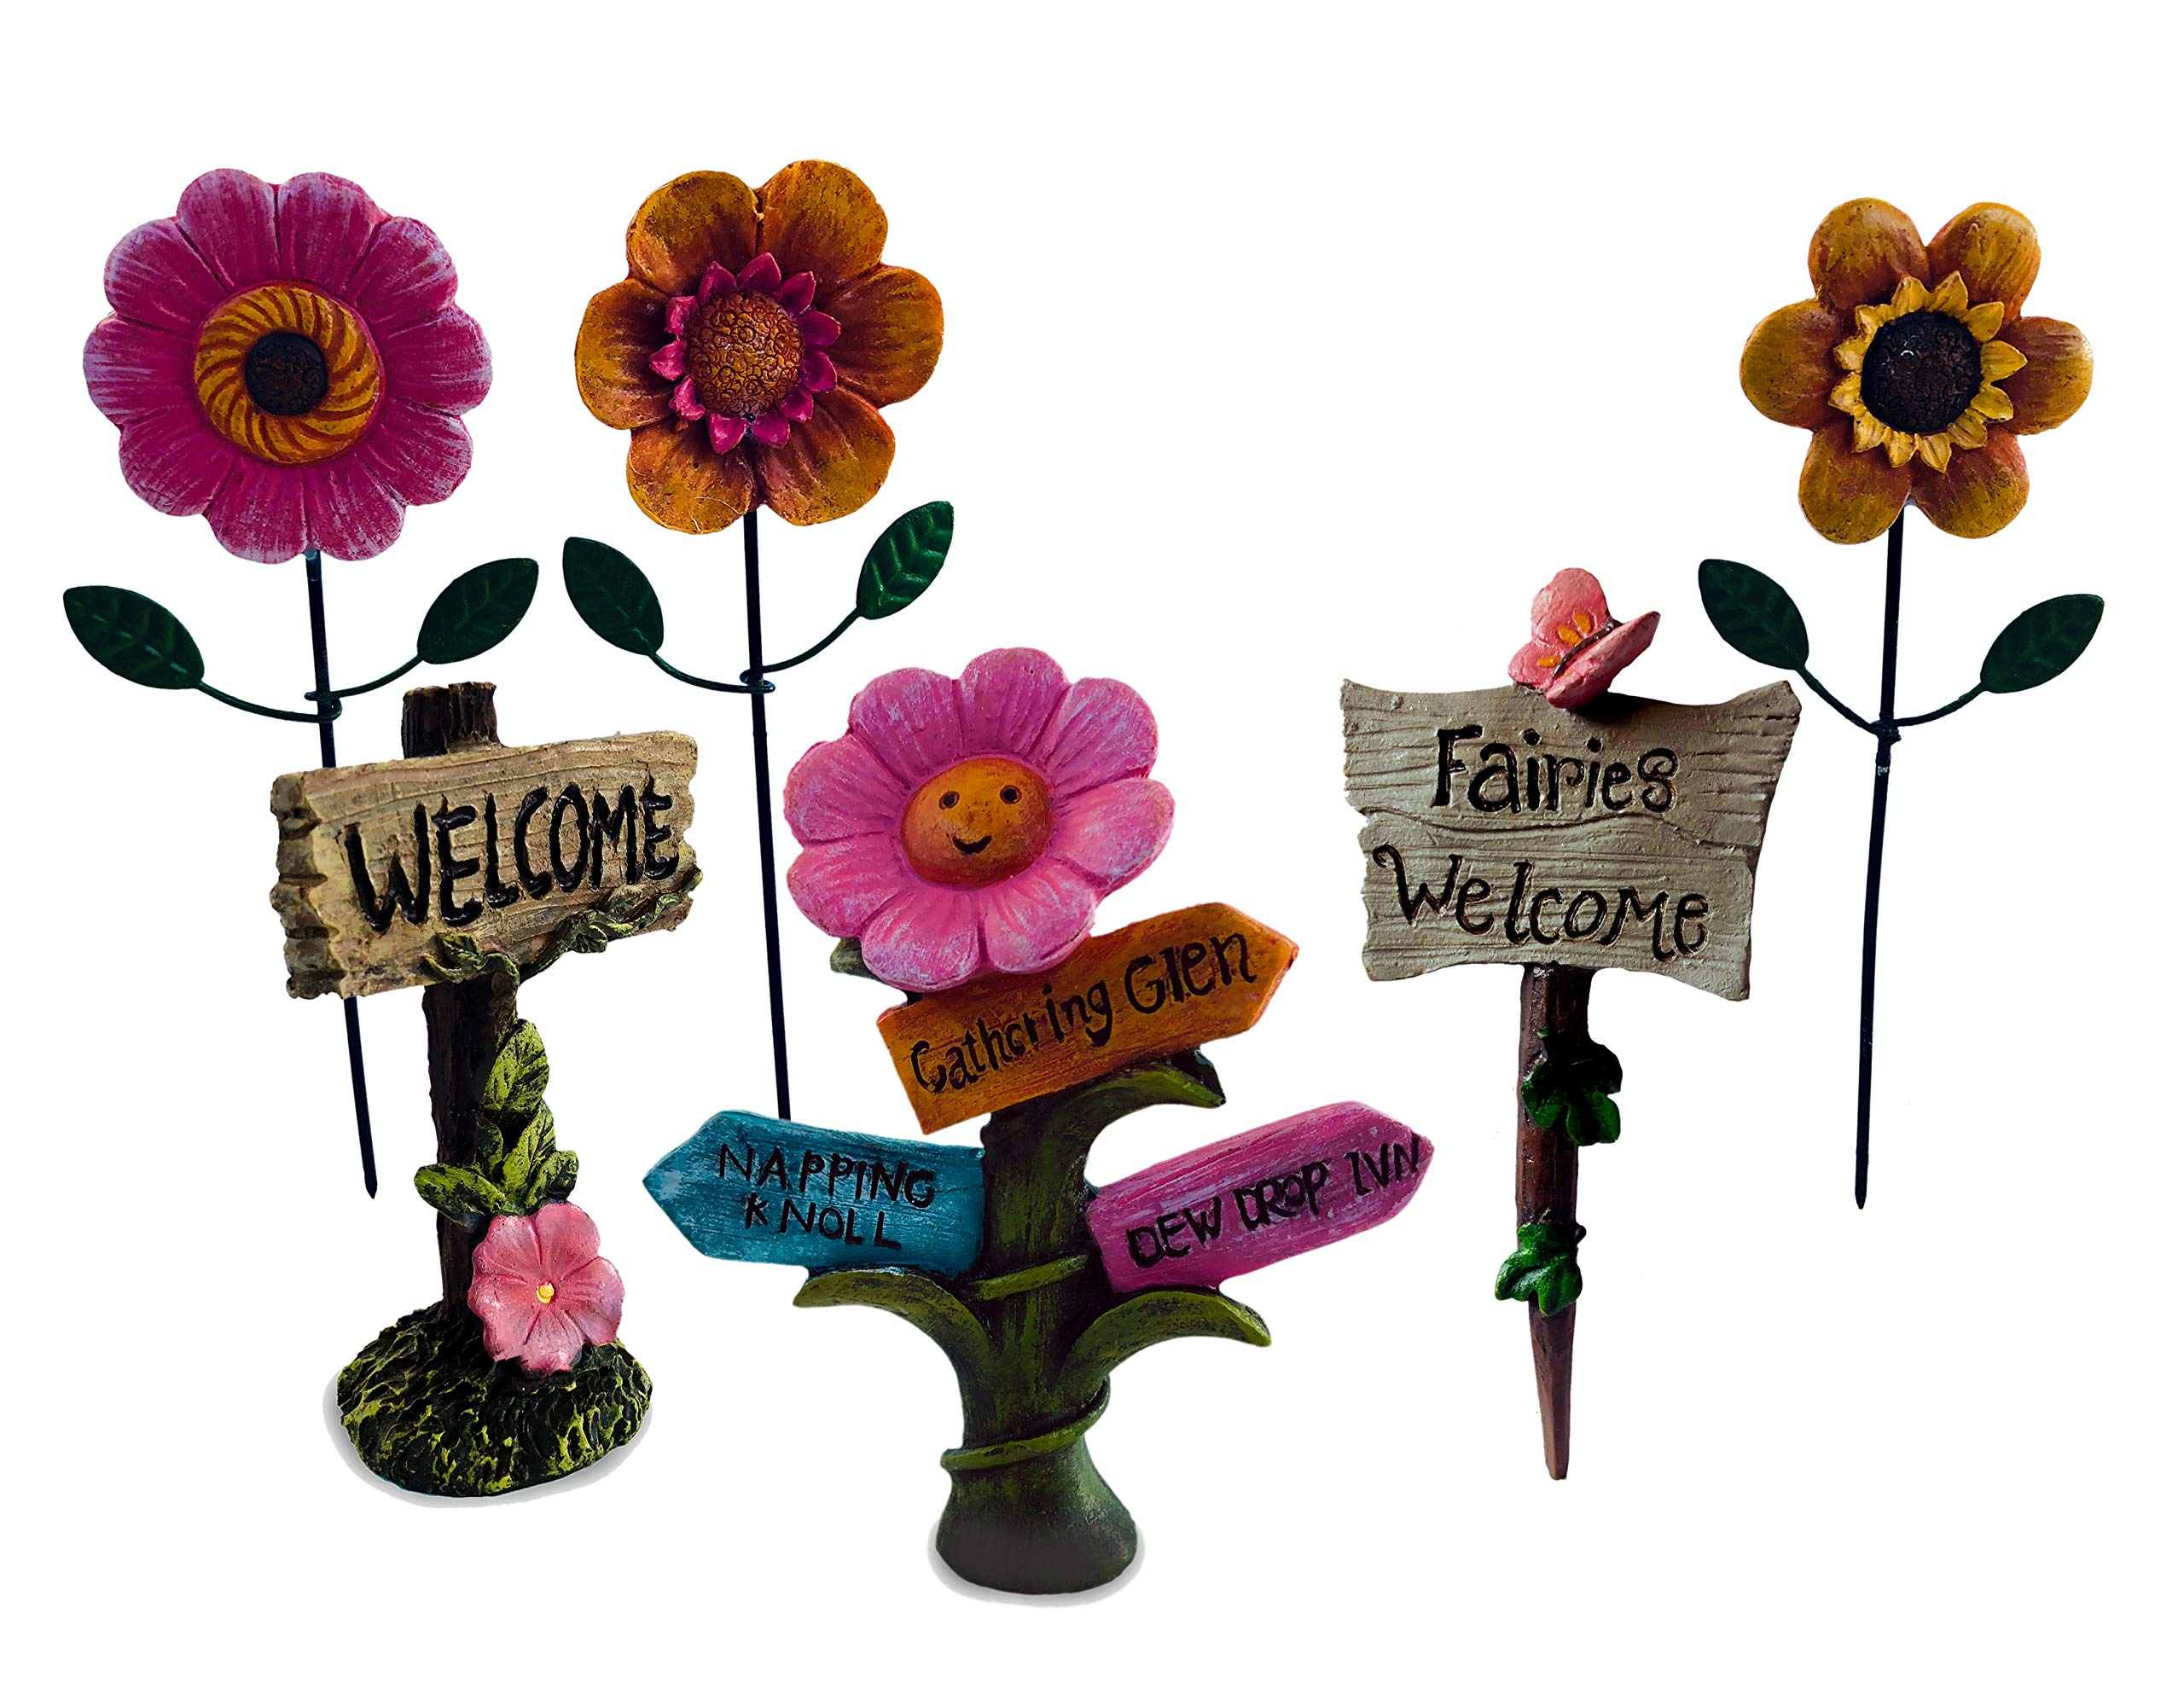 Fairy Signs and Miniature Flowers for Fairy Garden - Set of 6. Includes 3 Variations of Welcome Fairy Sign and 3 Fairy Garden Flowers with Picks